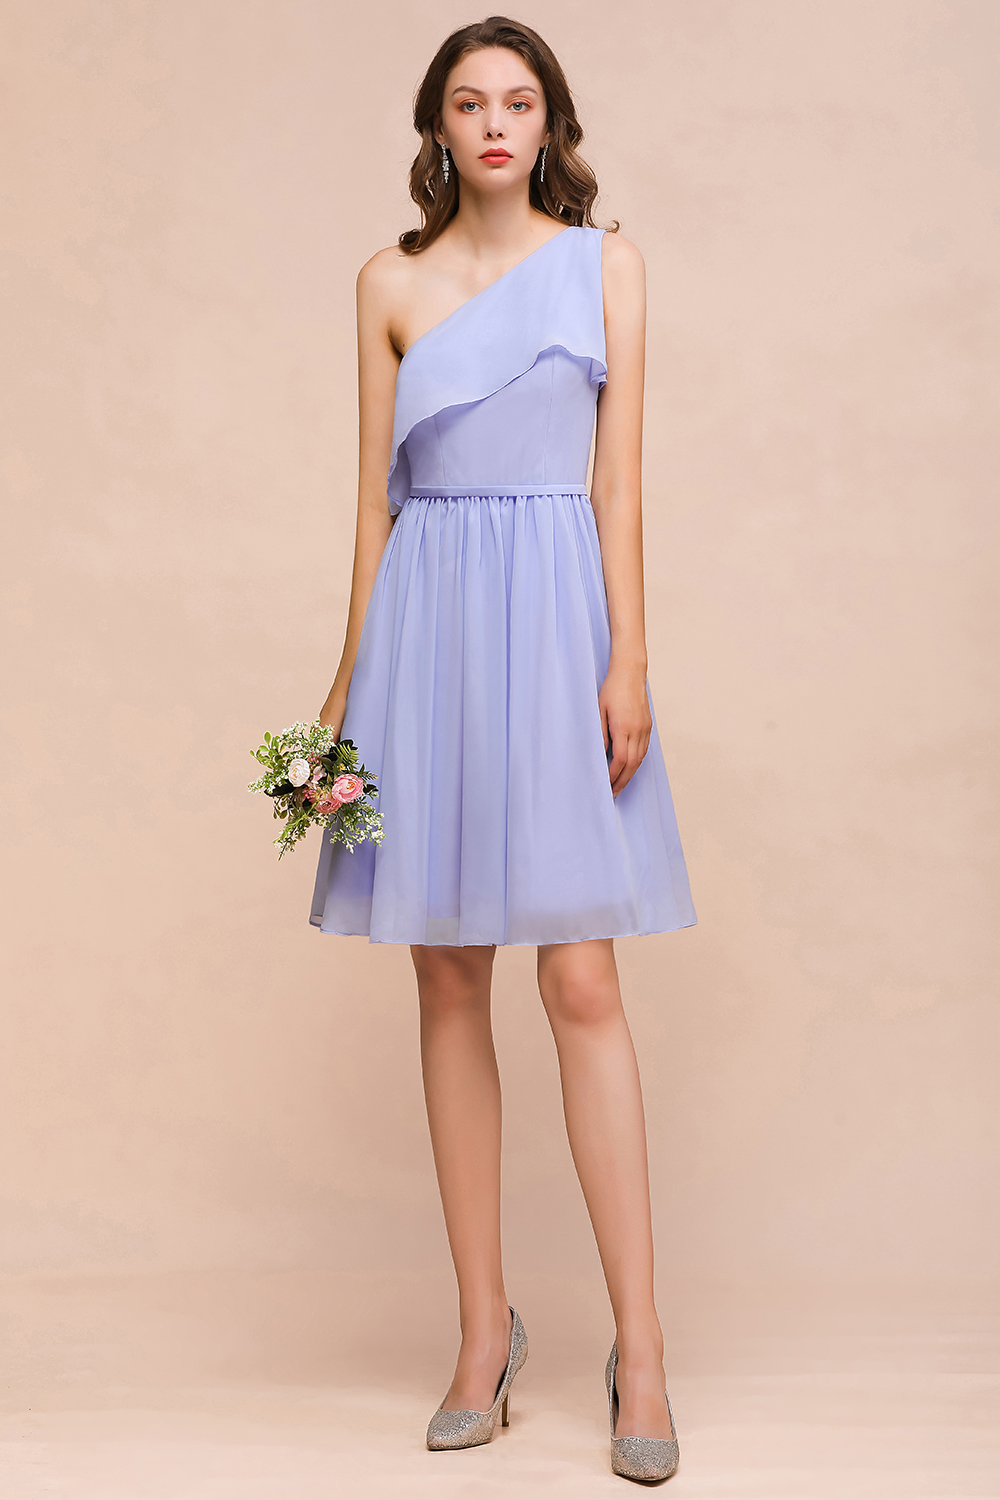 BMbridal Affordable One Shoulder Ruffle Lavender Chiffon Short Bridesmaid Dress